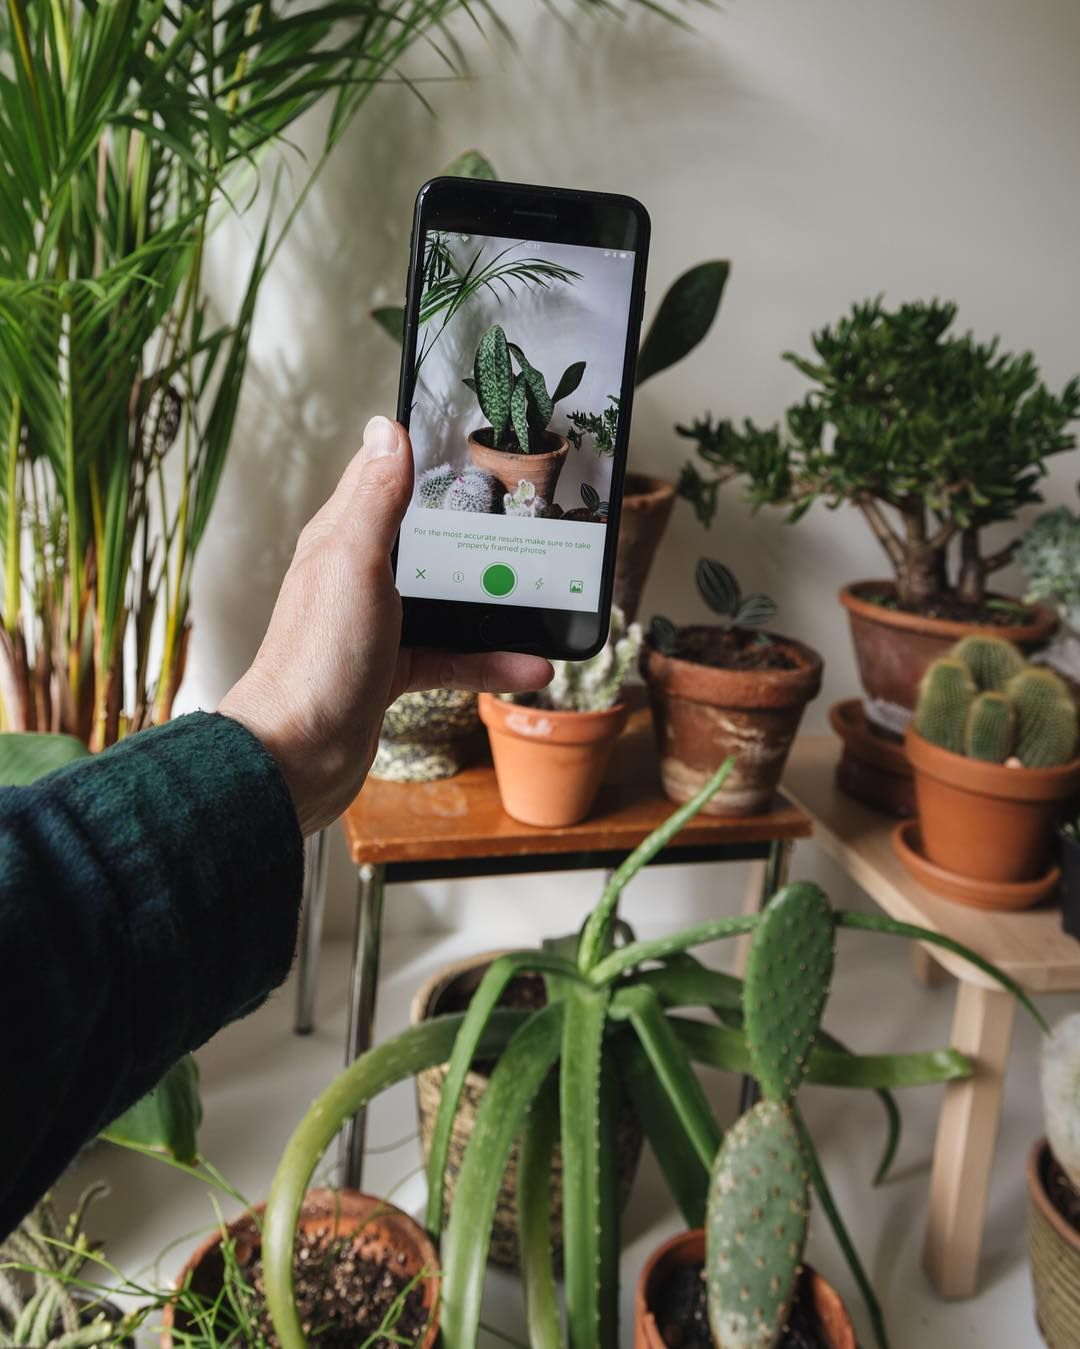 advertisement PlantSnap This app can help you to